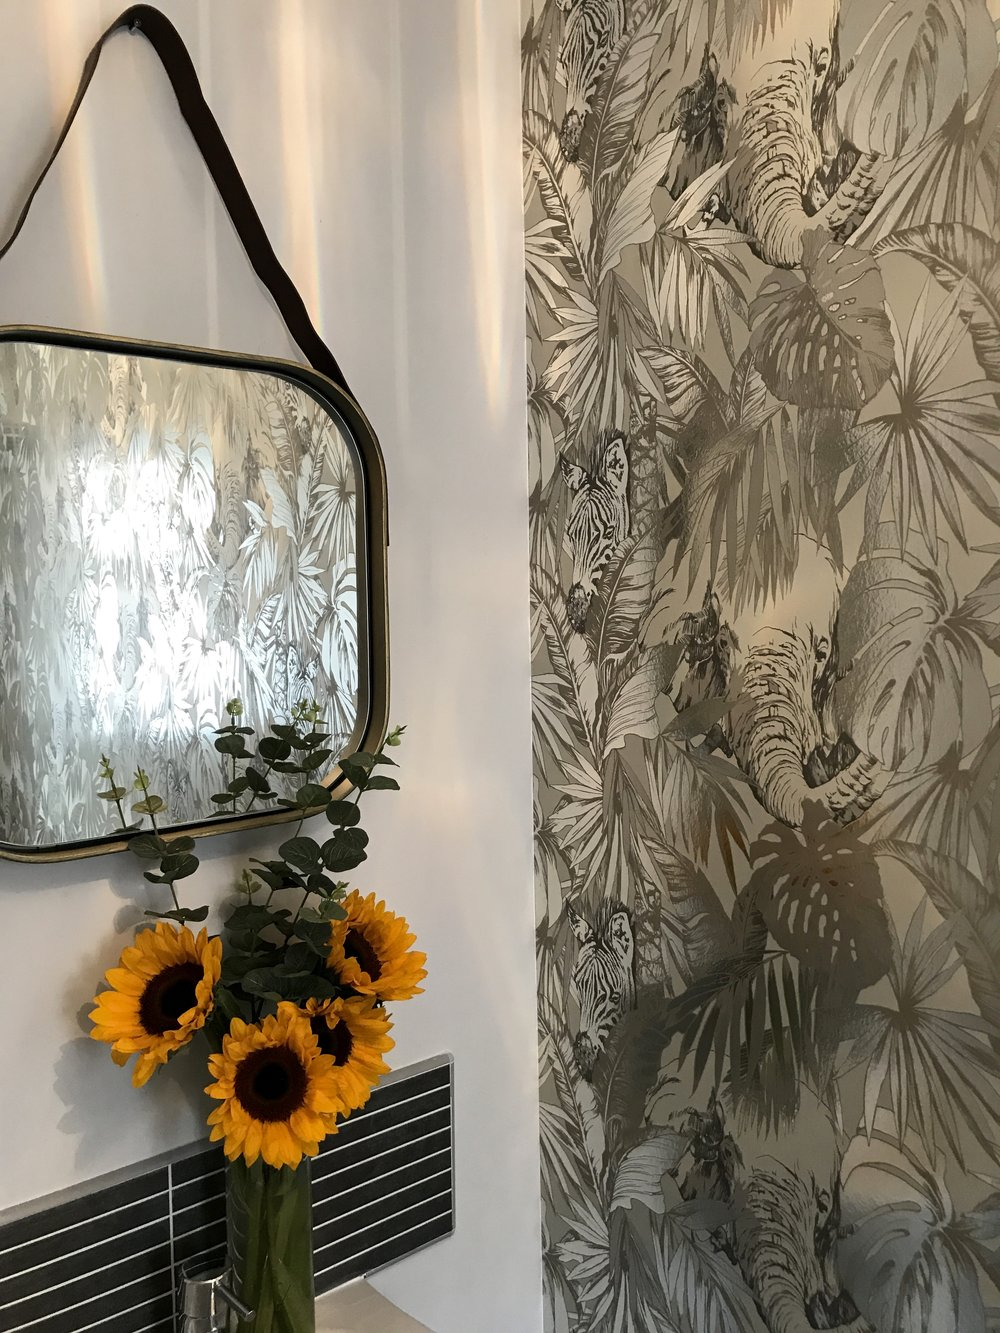 The brass framed mirror offsets the beautiful wallpaper perfectly in Beth's downstairs bathroom  Wallpaper- 'Maharaja'-   Prestigious.co.uk   ..... Mirror-   Next.co.uk